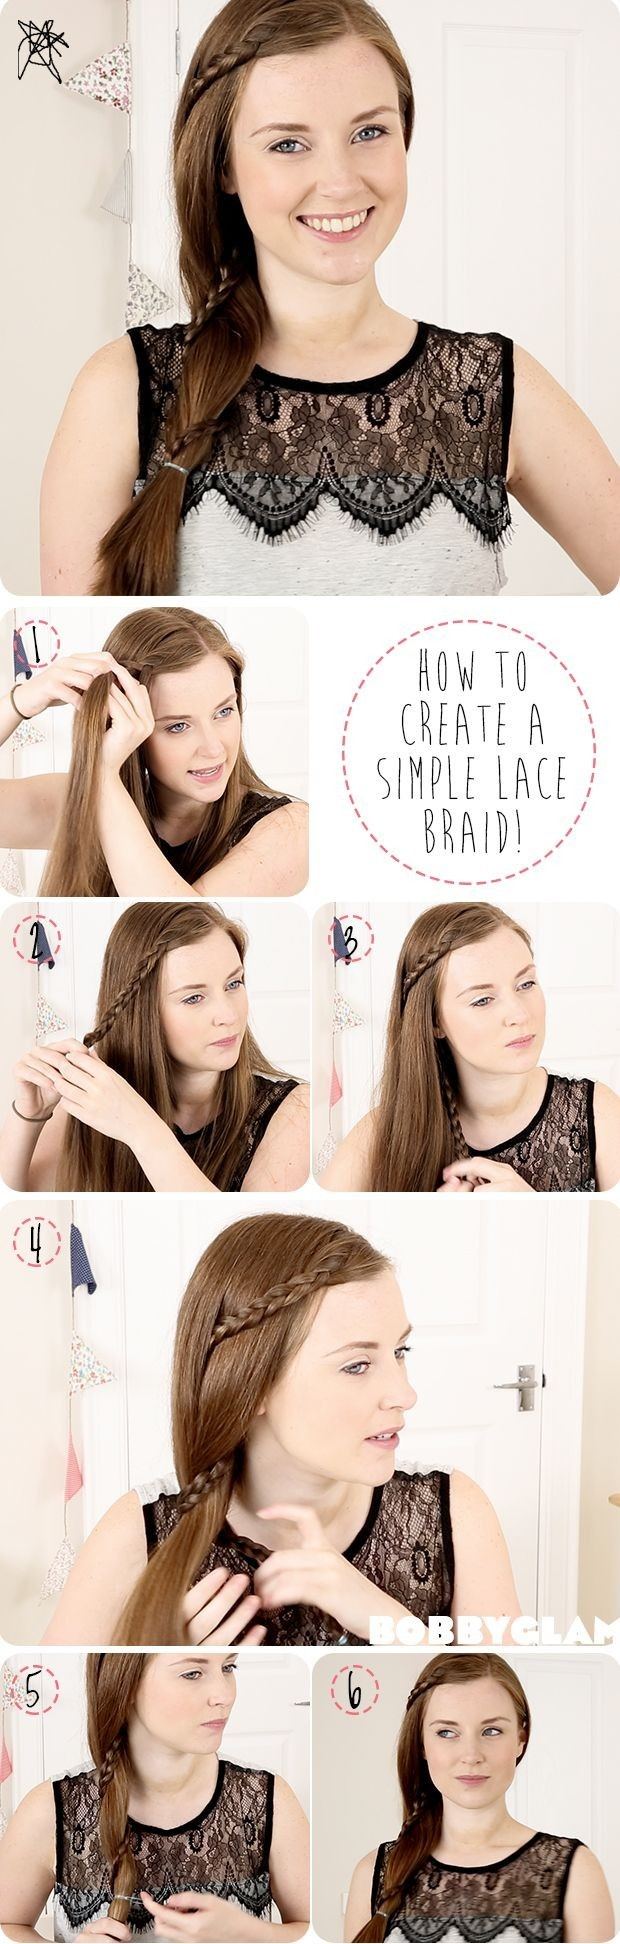 Simple Lace Braid Hair Tutorial